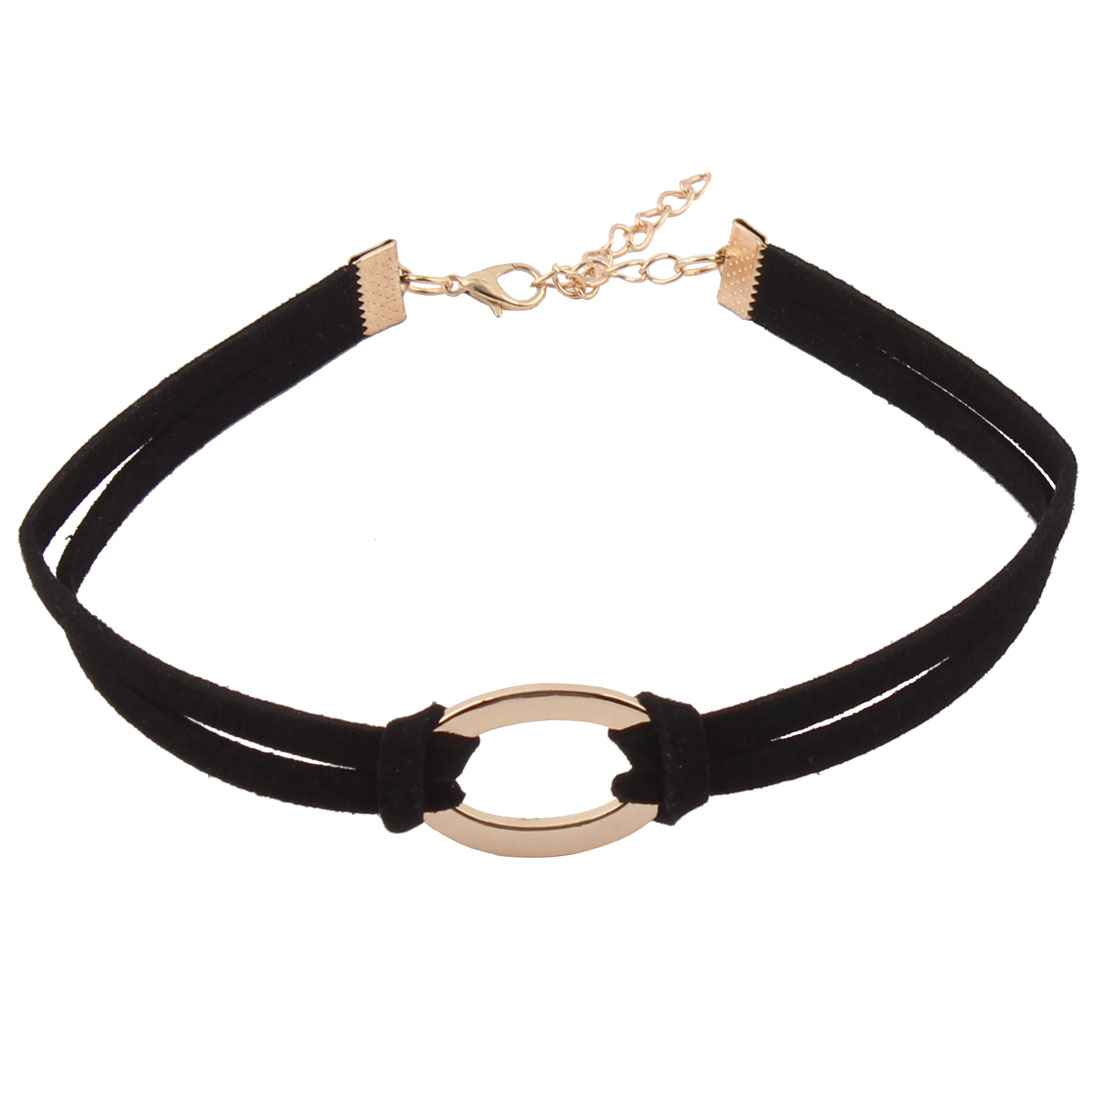 Faux Leather Clothing Decor Gold Tone Oval Design Ribbon Choker Necklace Black